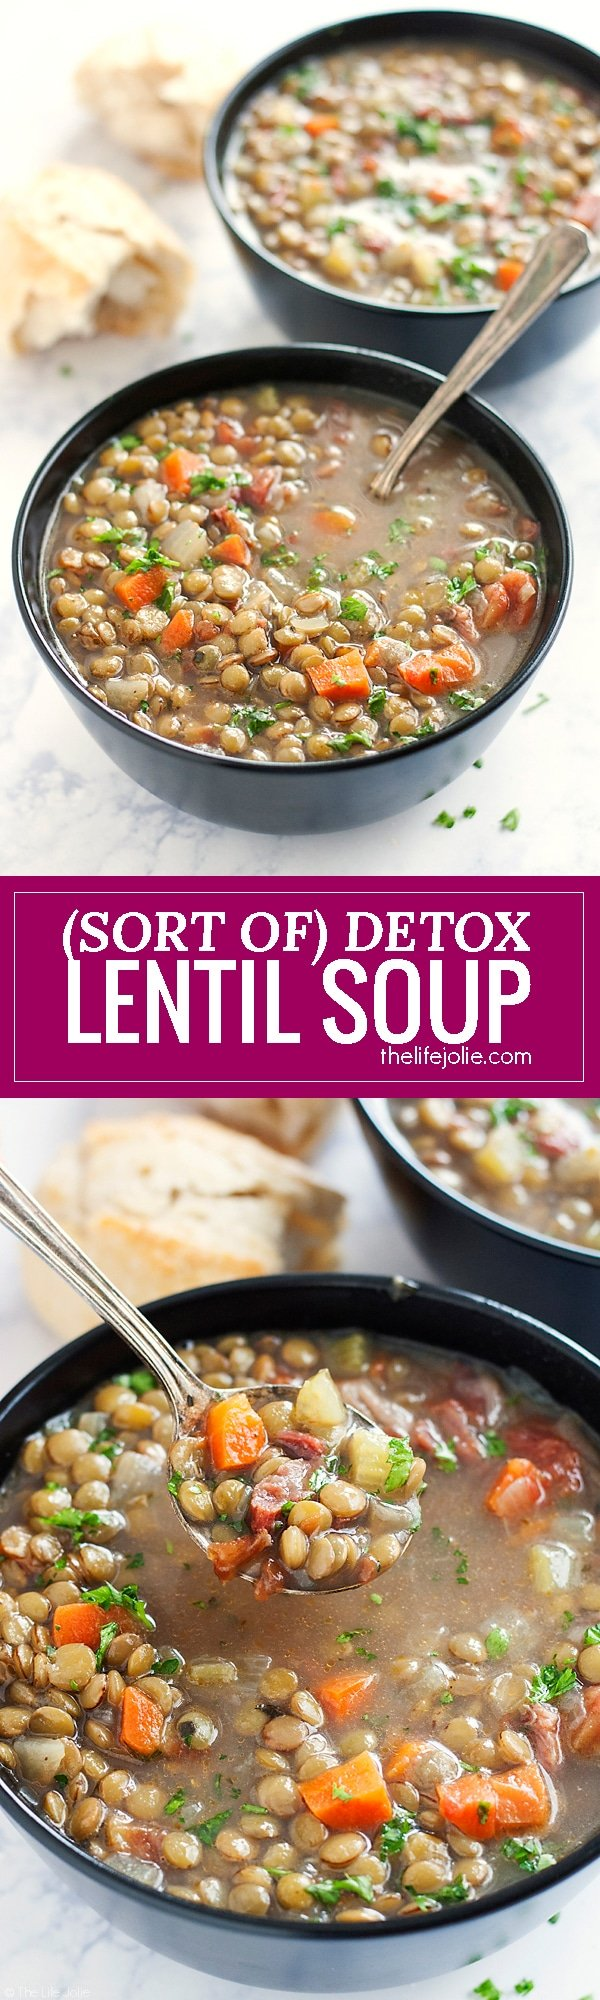 This (Sort of) Detox Lentil Soup is a very easy recipe. It's healthy while still maintaining great taste and full of delicious lentils, protein and savory ham hocks for a smoky flavor!